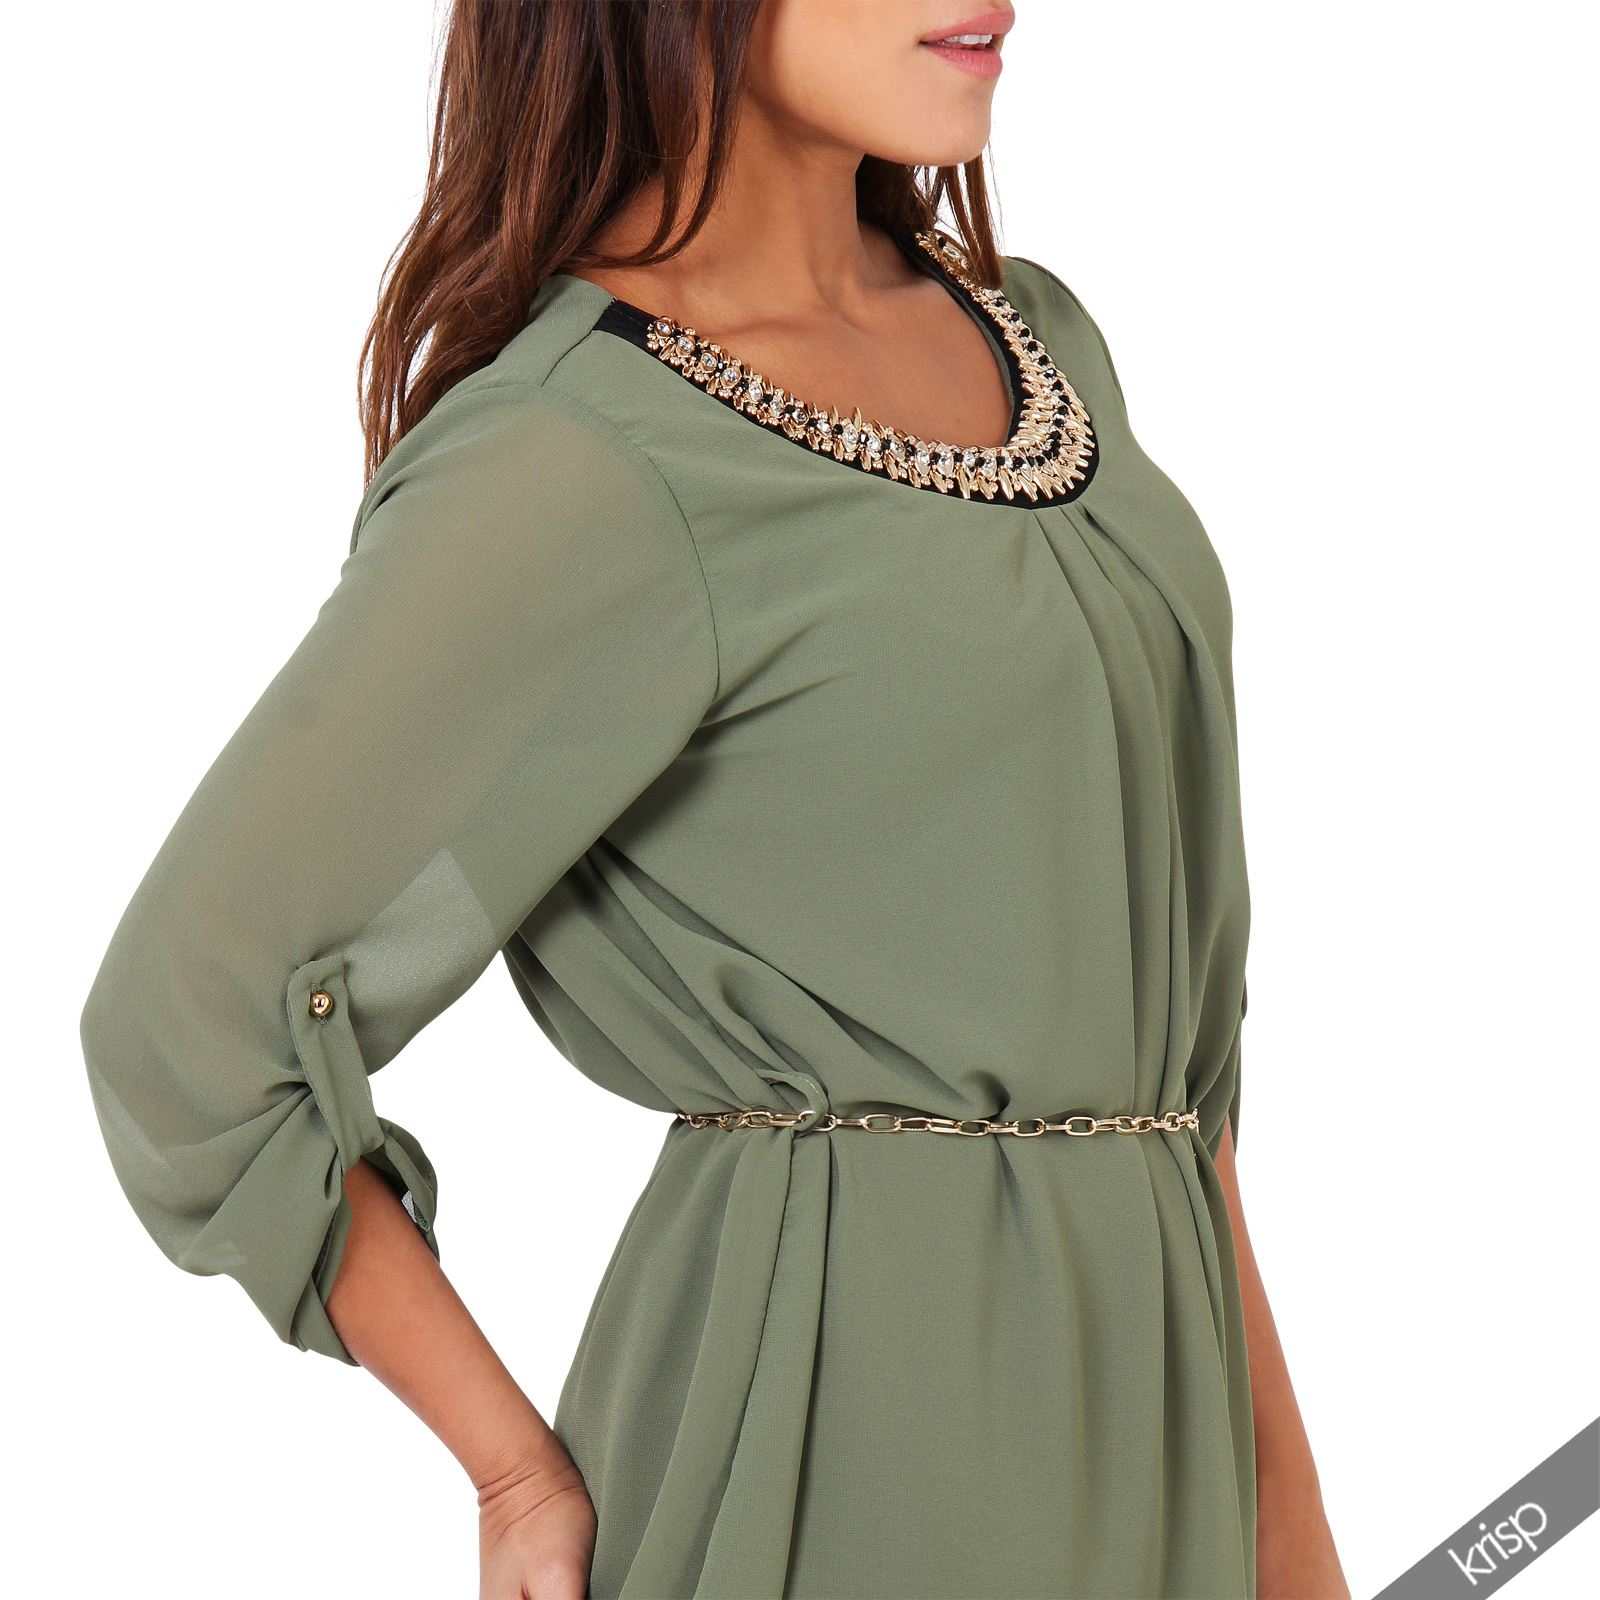 Women Beaded Casual Turn Up 3/4 Sleeve Long Tunic Top Shirt Belted Blouse Office